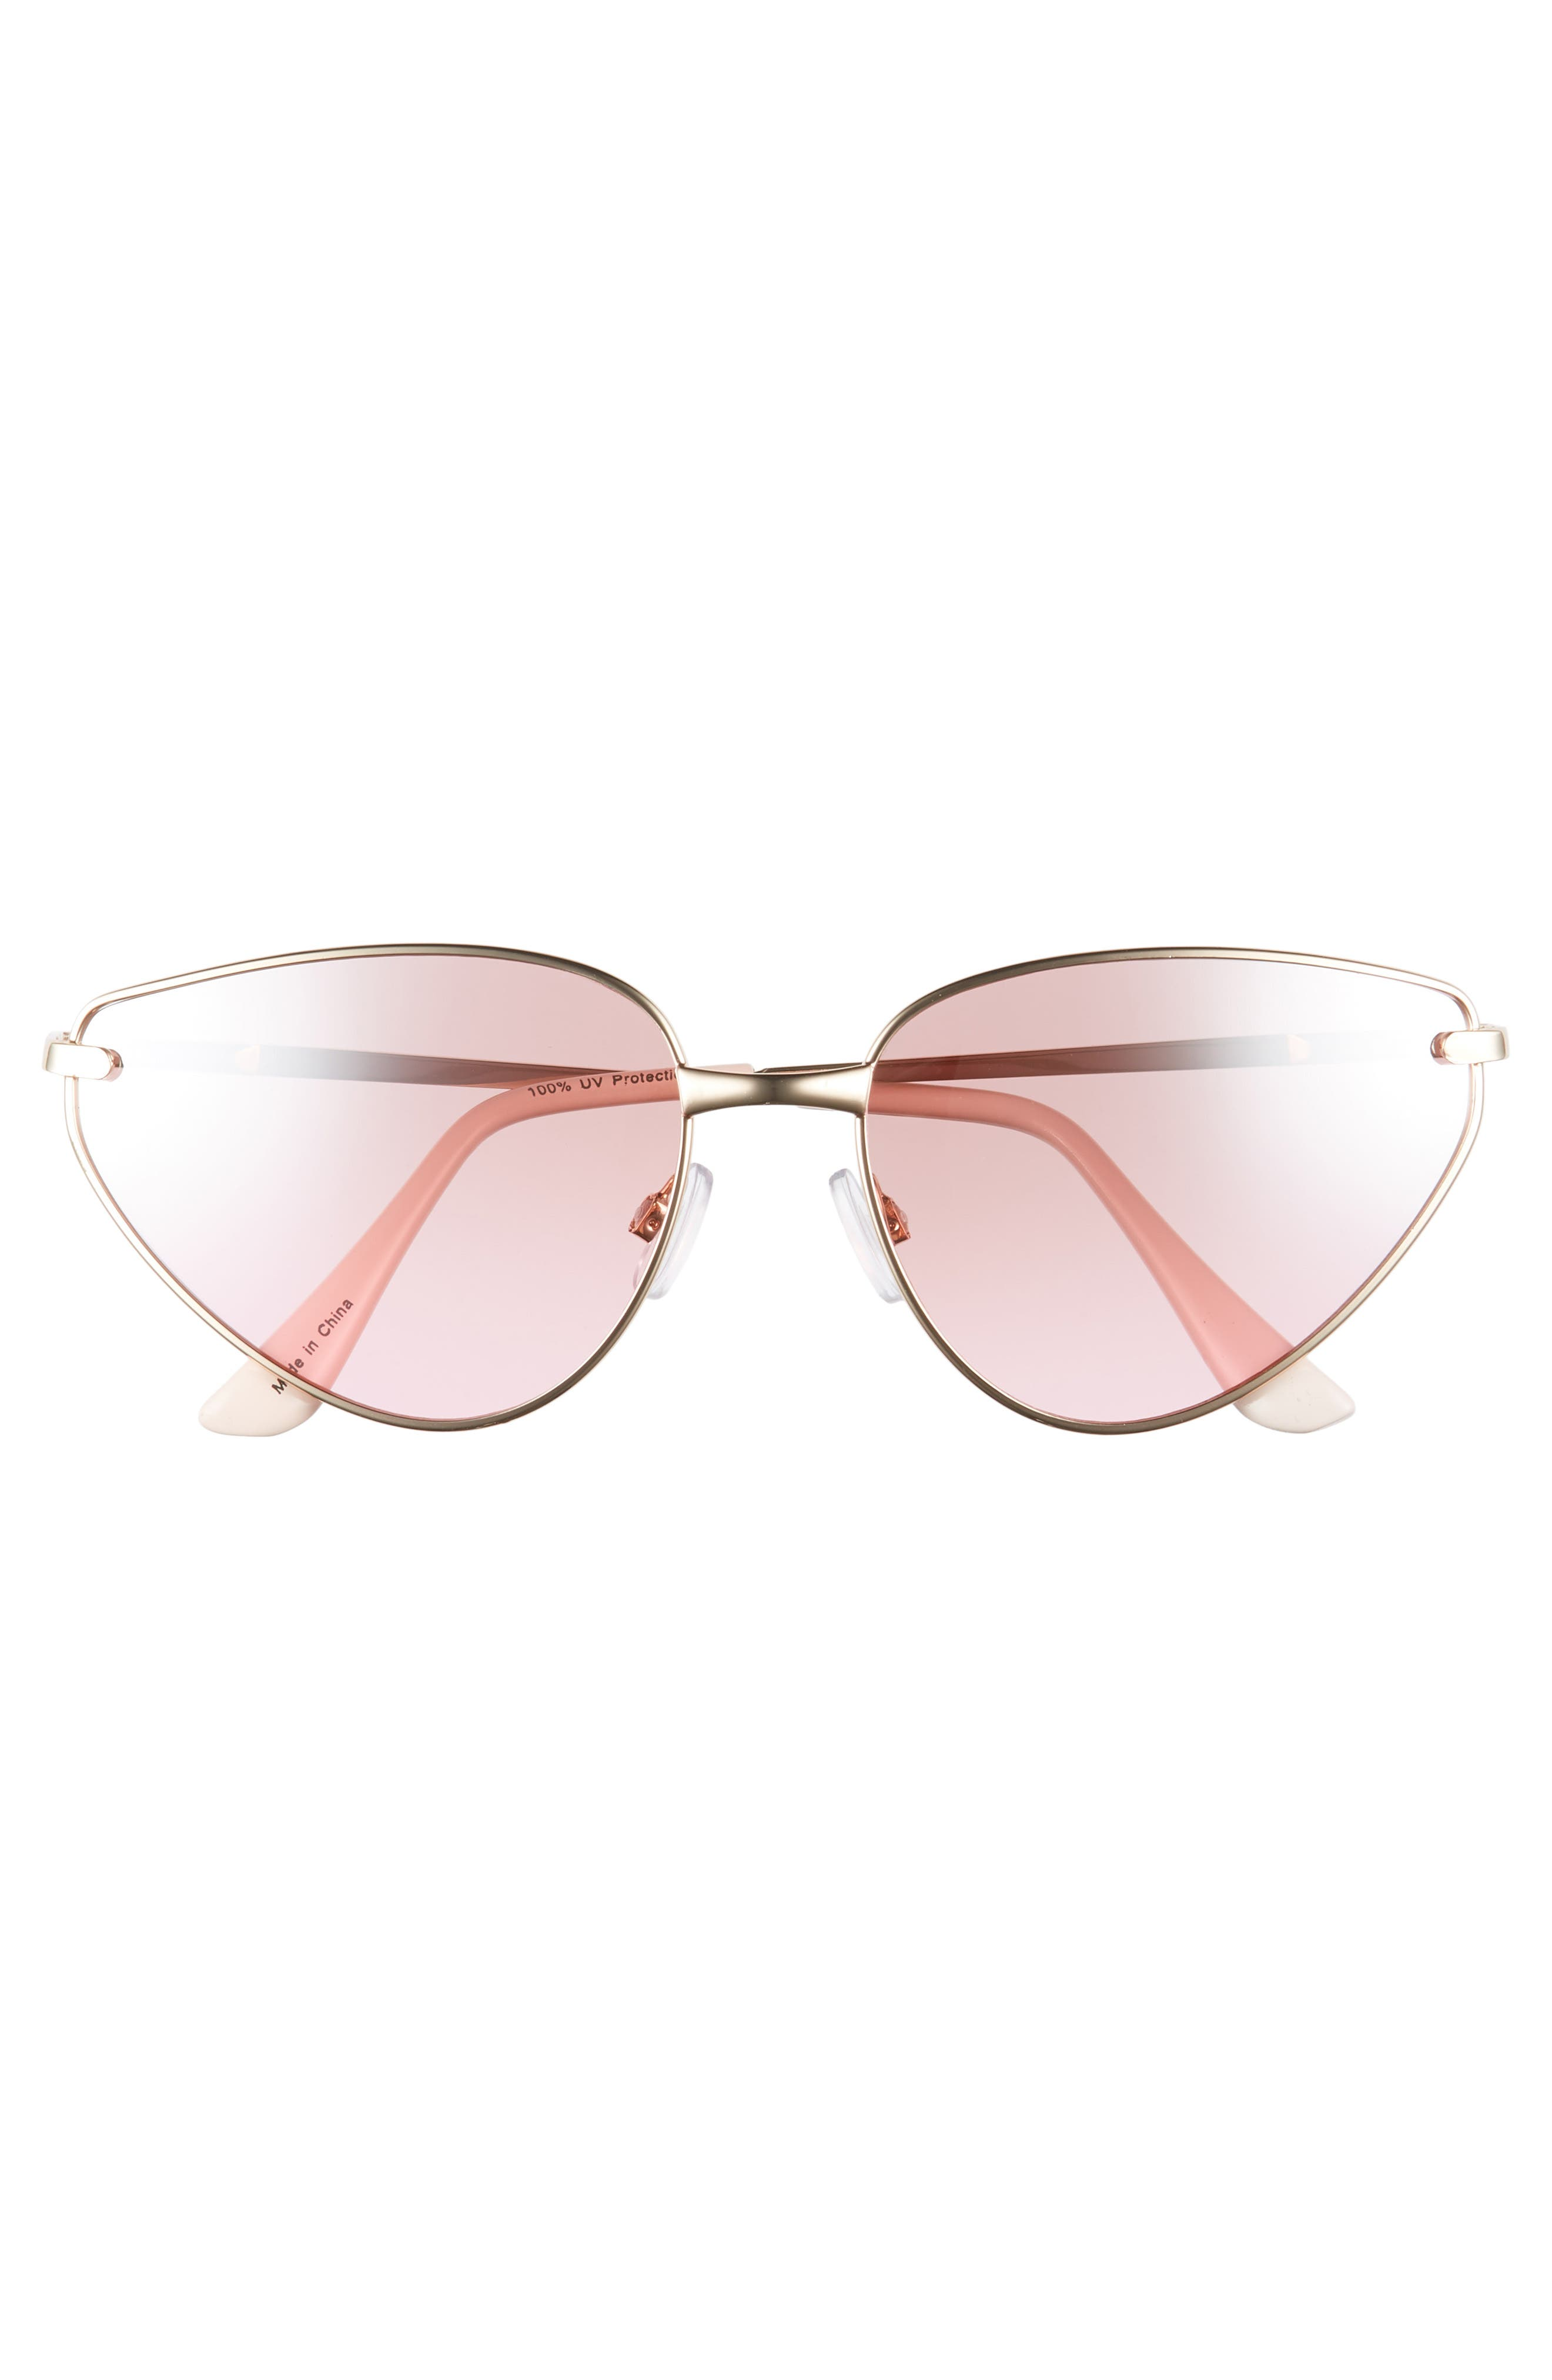 60mm Exaggerated Cat Eye Sunglasses,                             Alternate thumbnail 3, color,                             710